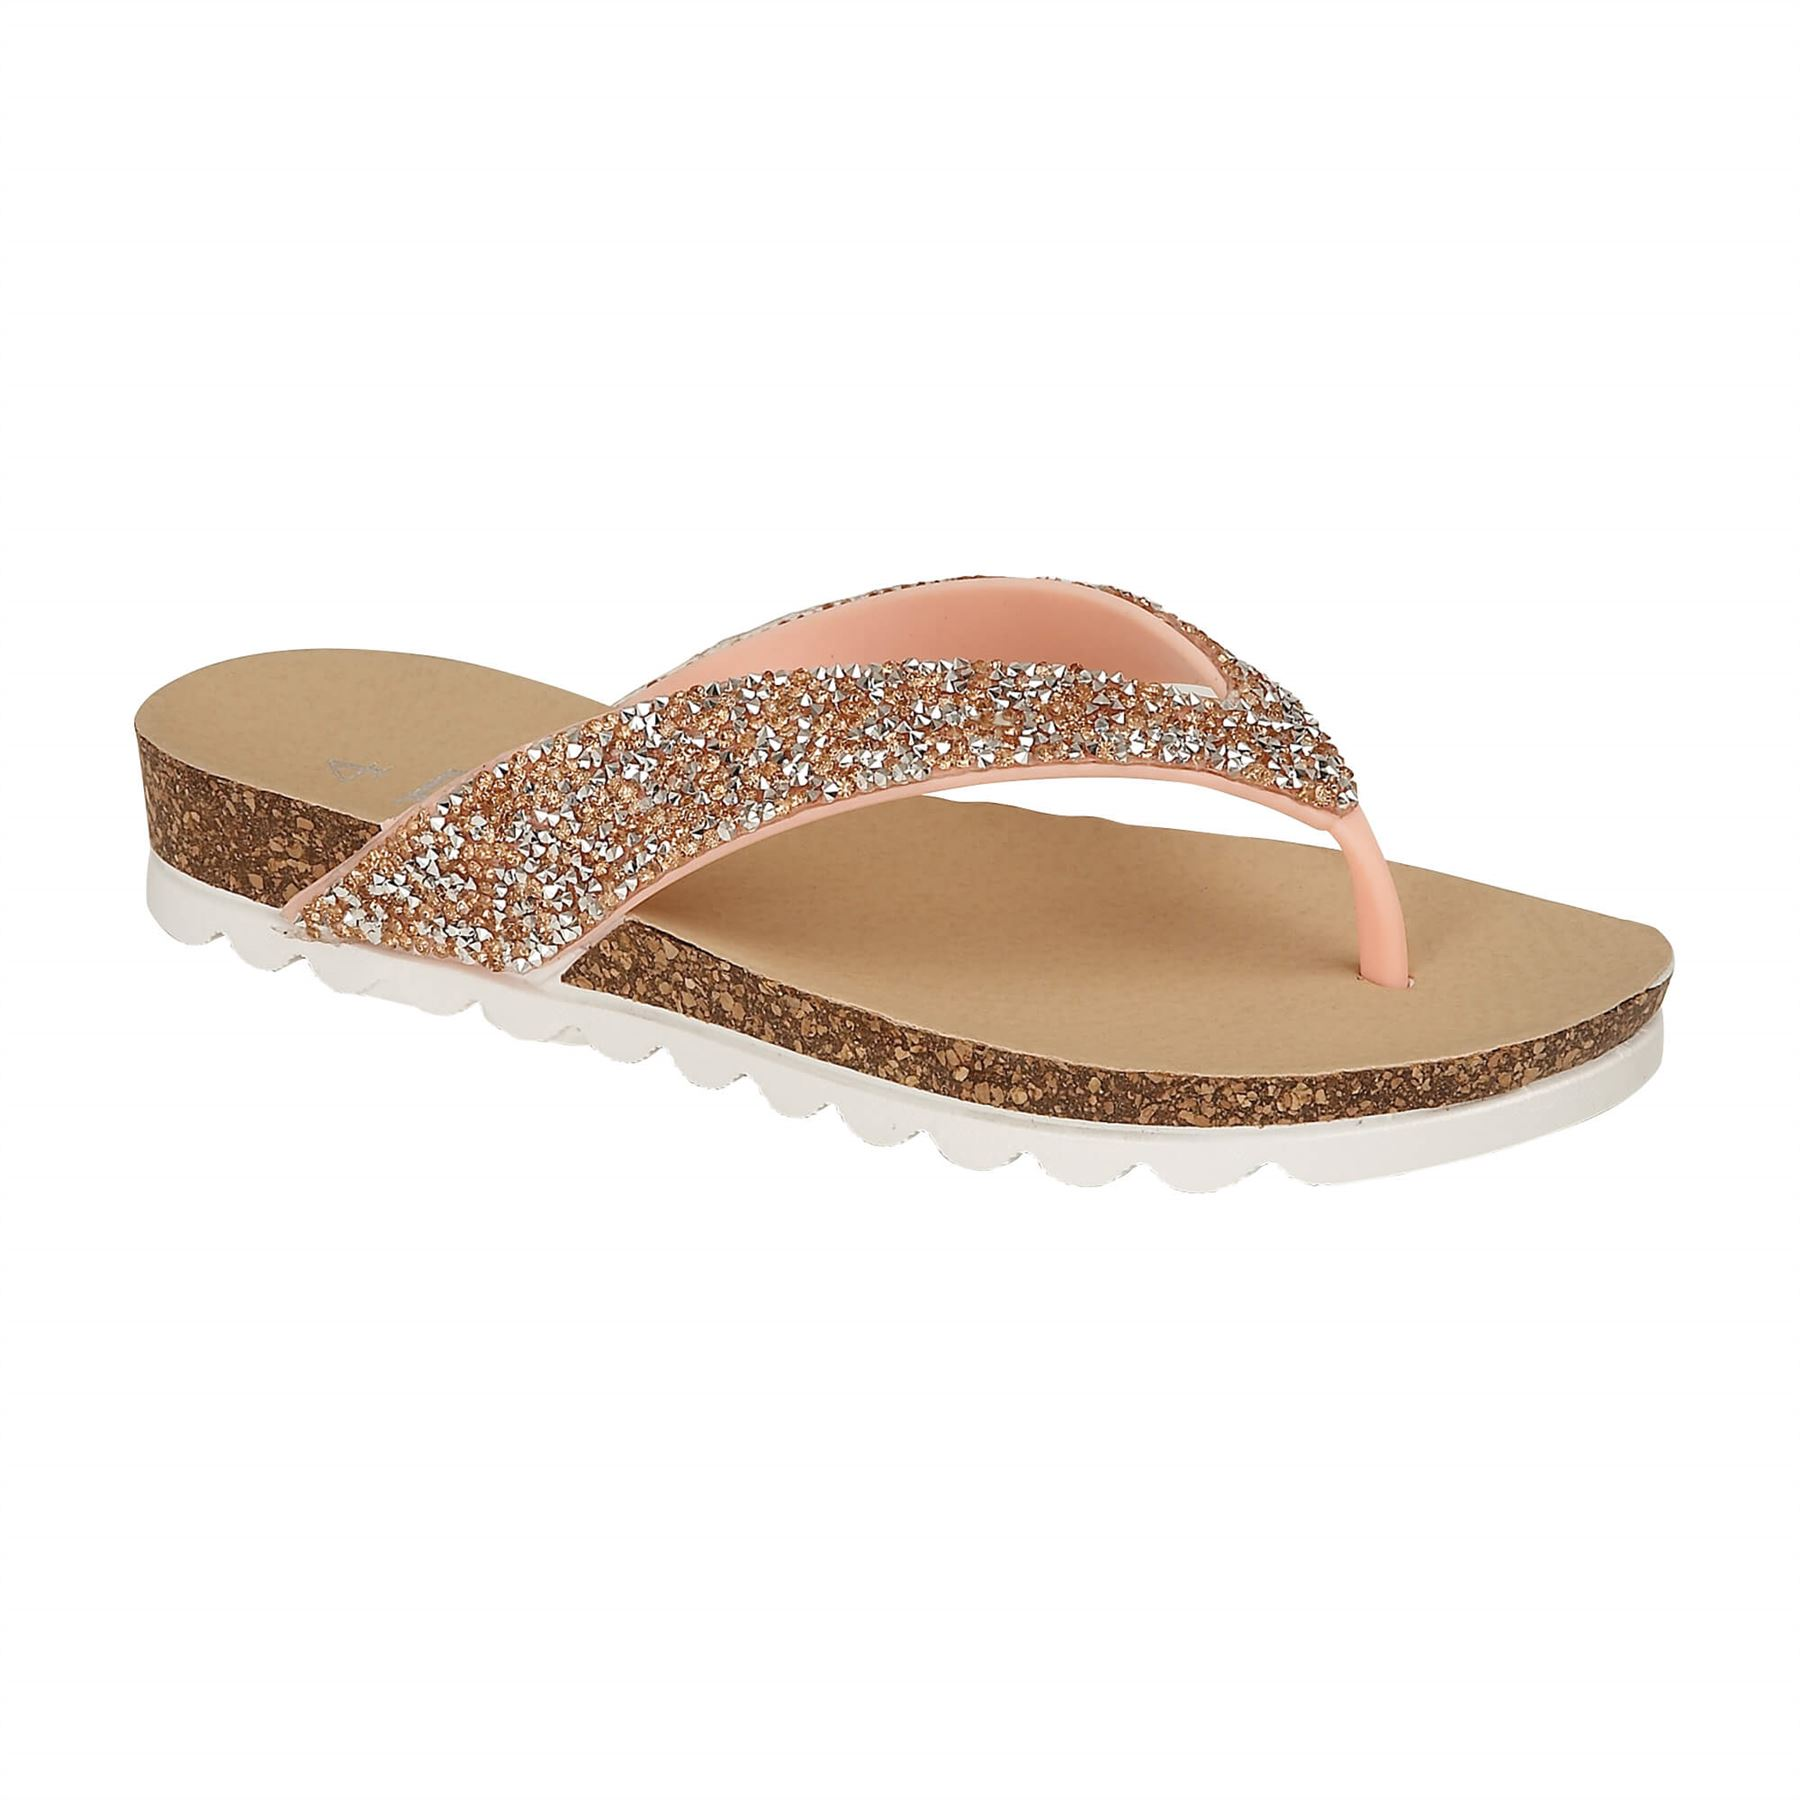 Womens-Casual-Toe-Post-Sparkly-Sandals-Ladies-Summer-Flip-Flops-Sliders-Mules thumbnail 3